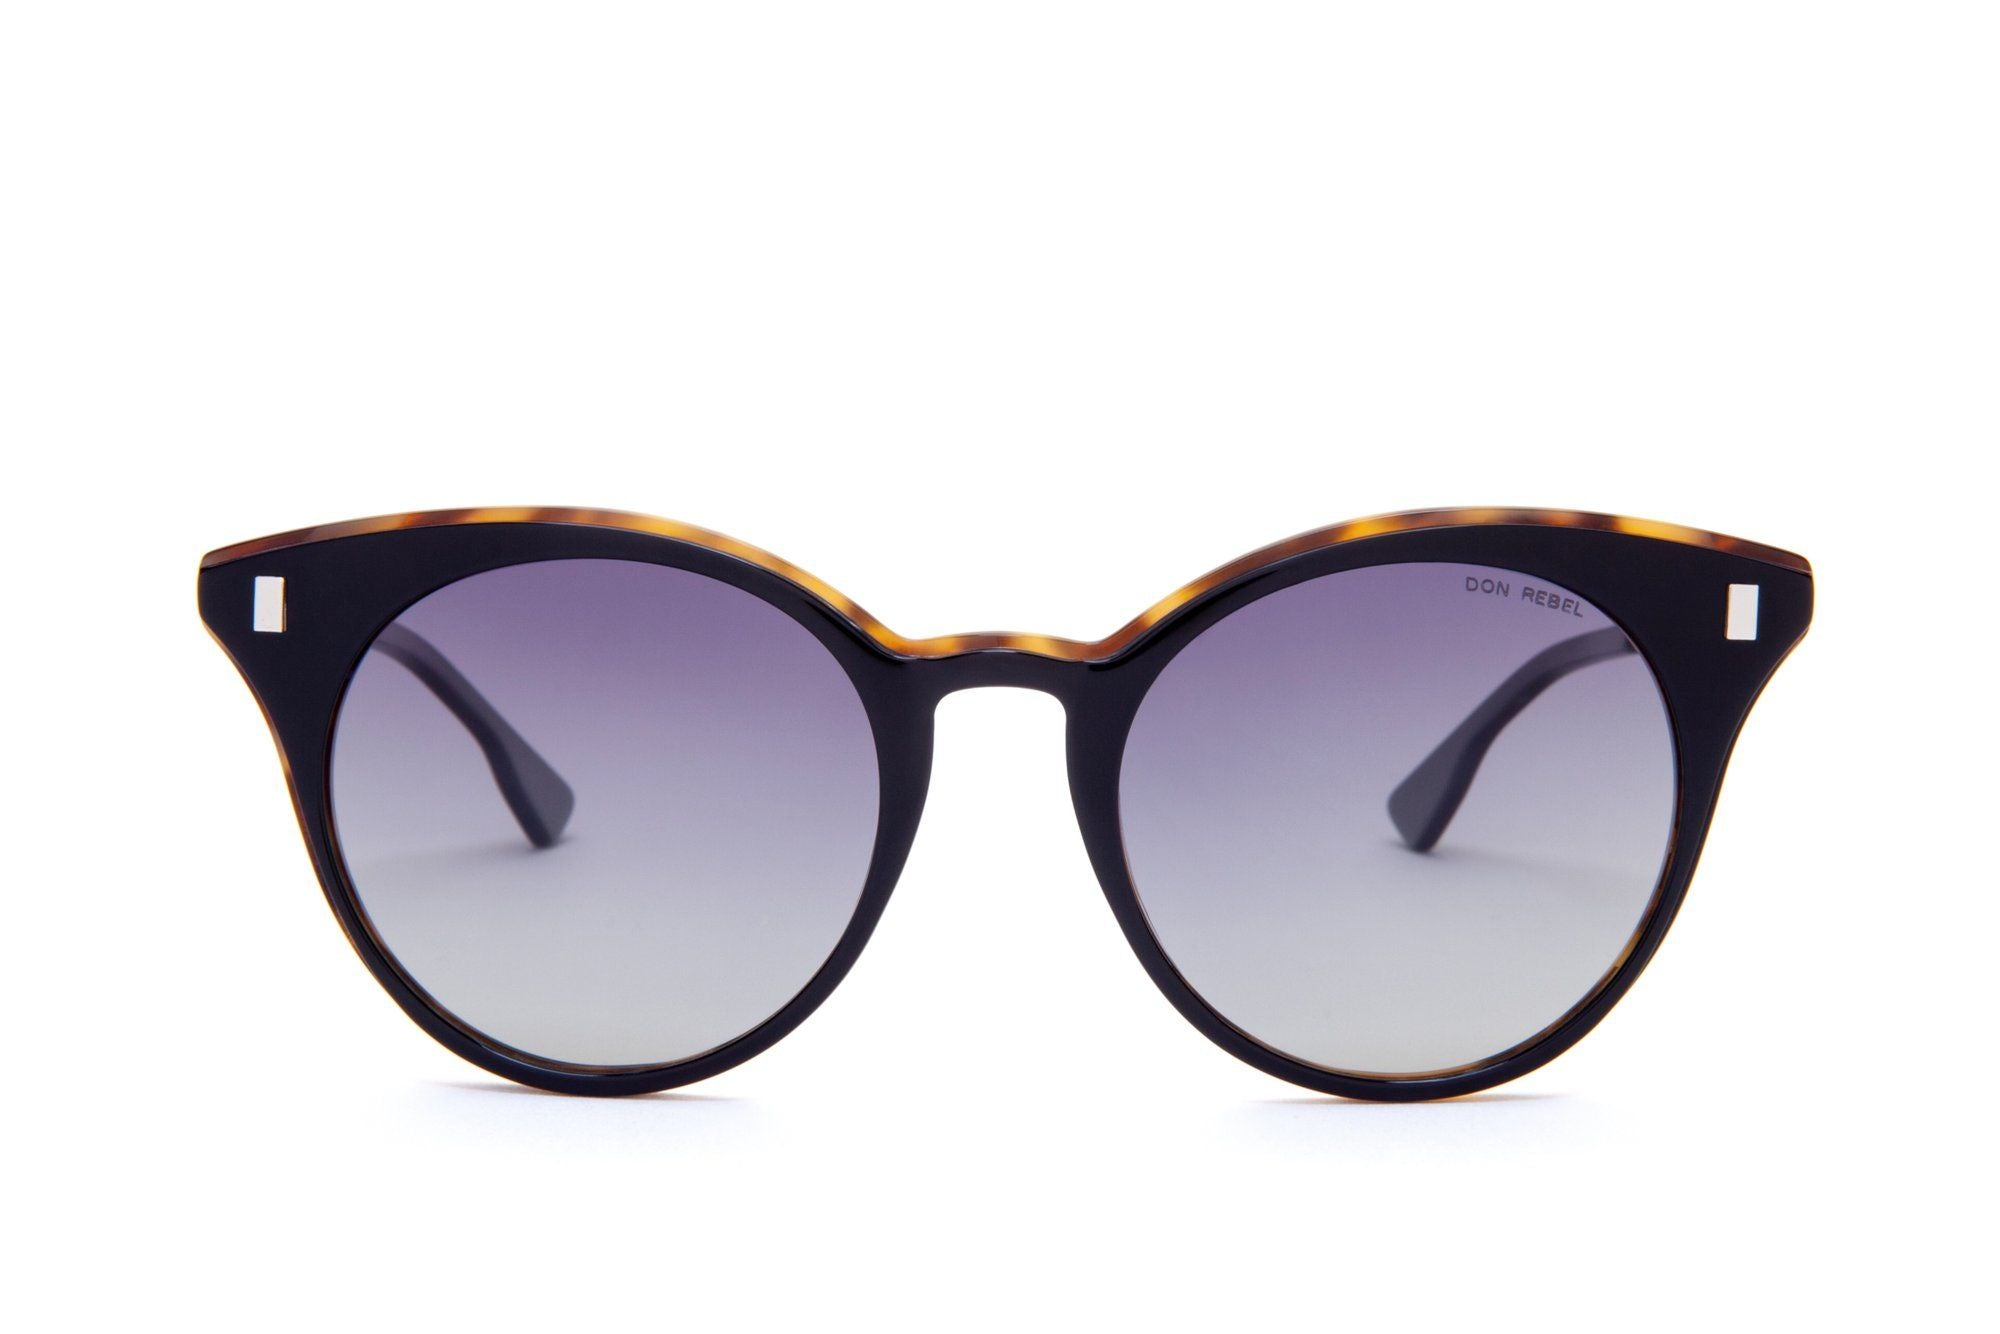 MEMPHIS BLACK GRADIENT BOLD CAT EYE SUNGLASSES